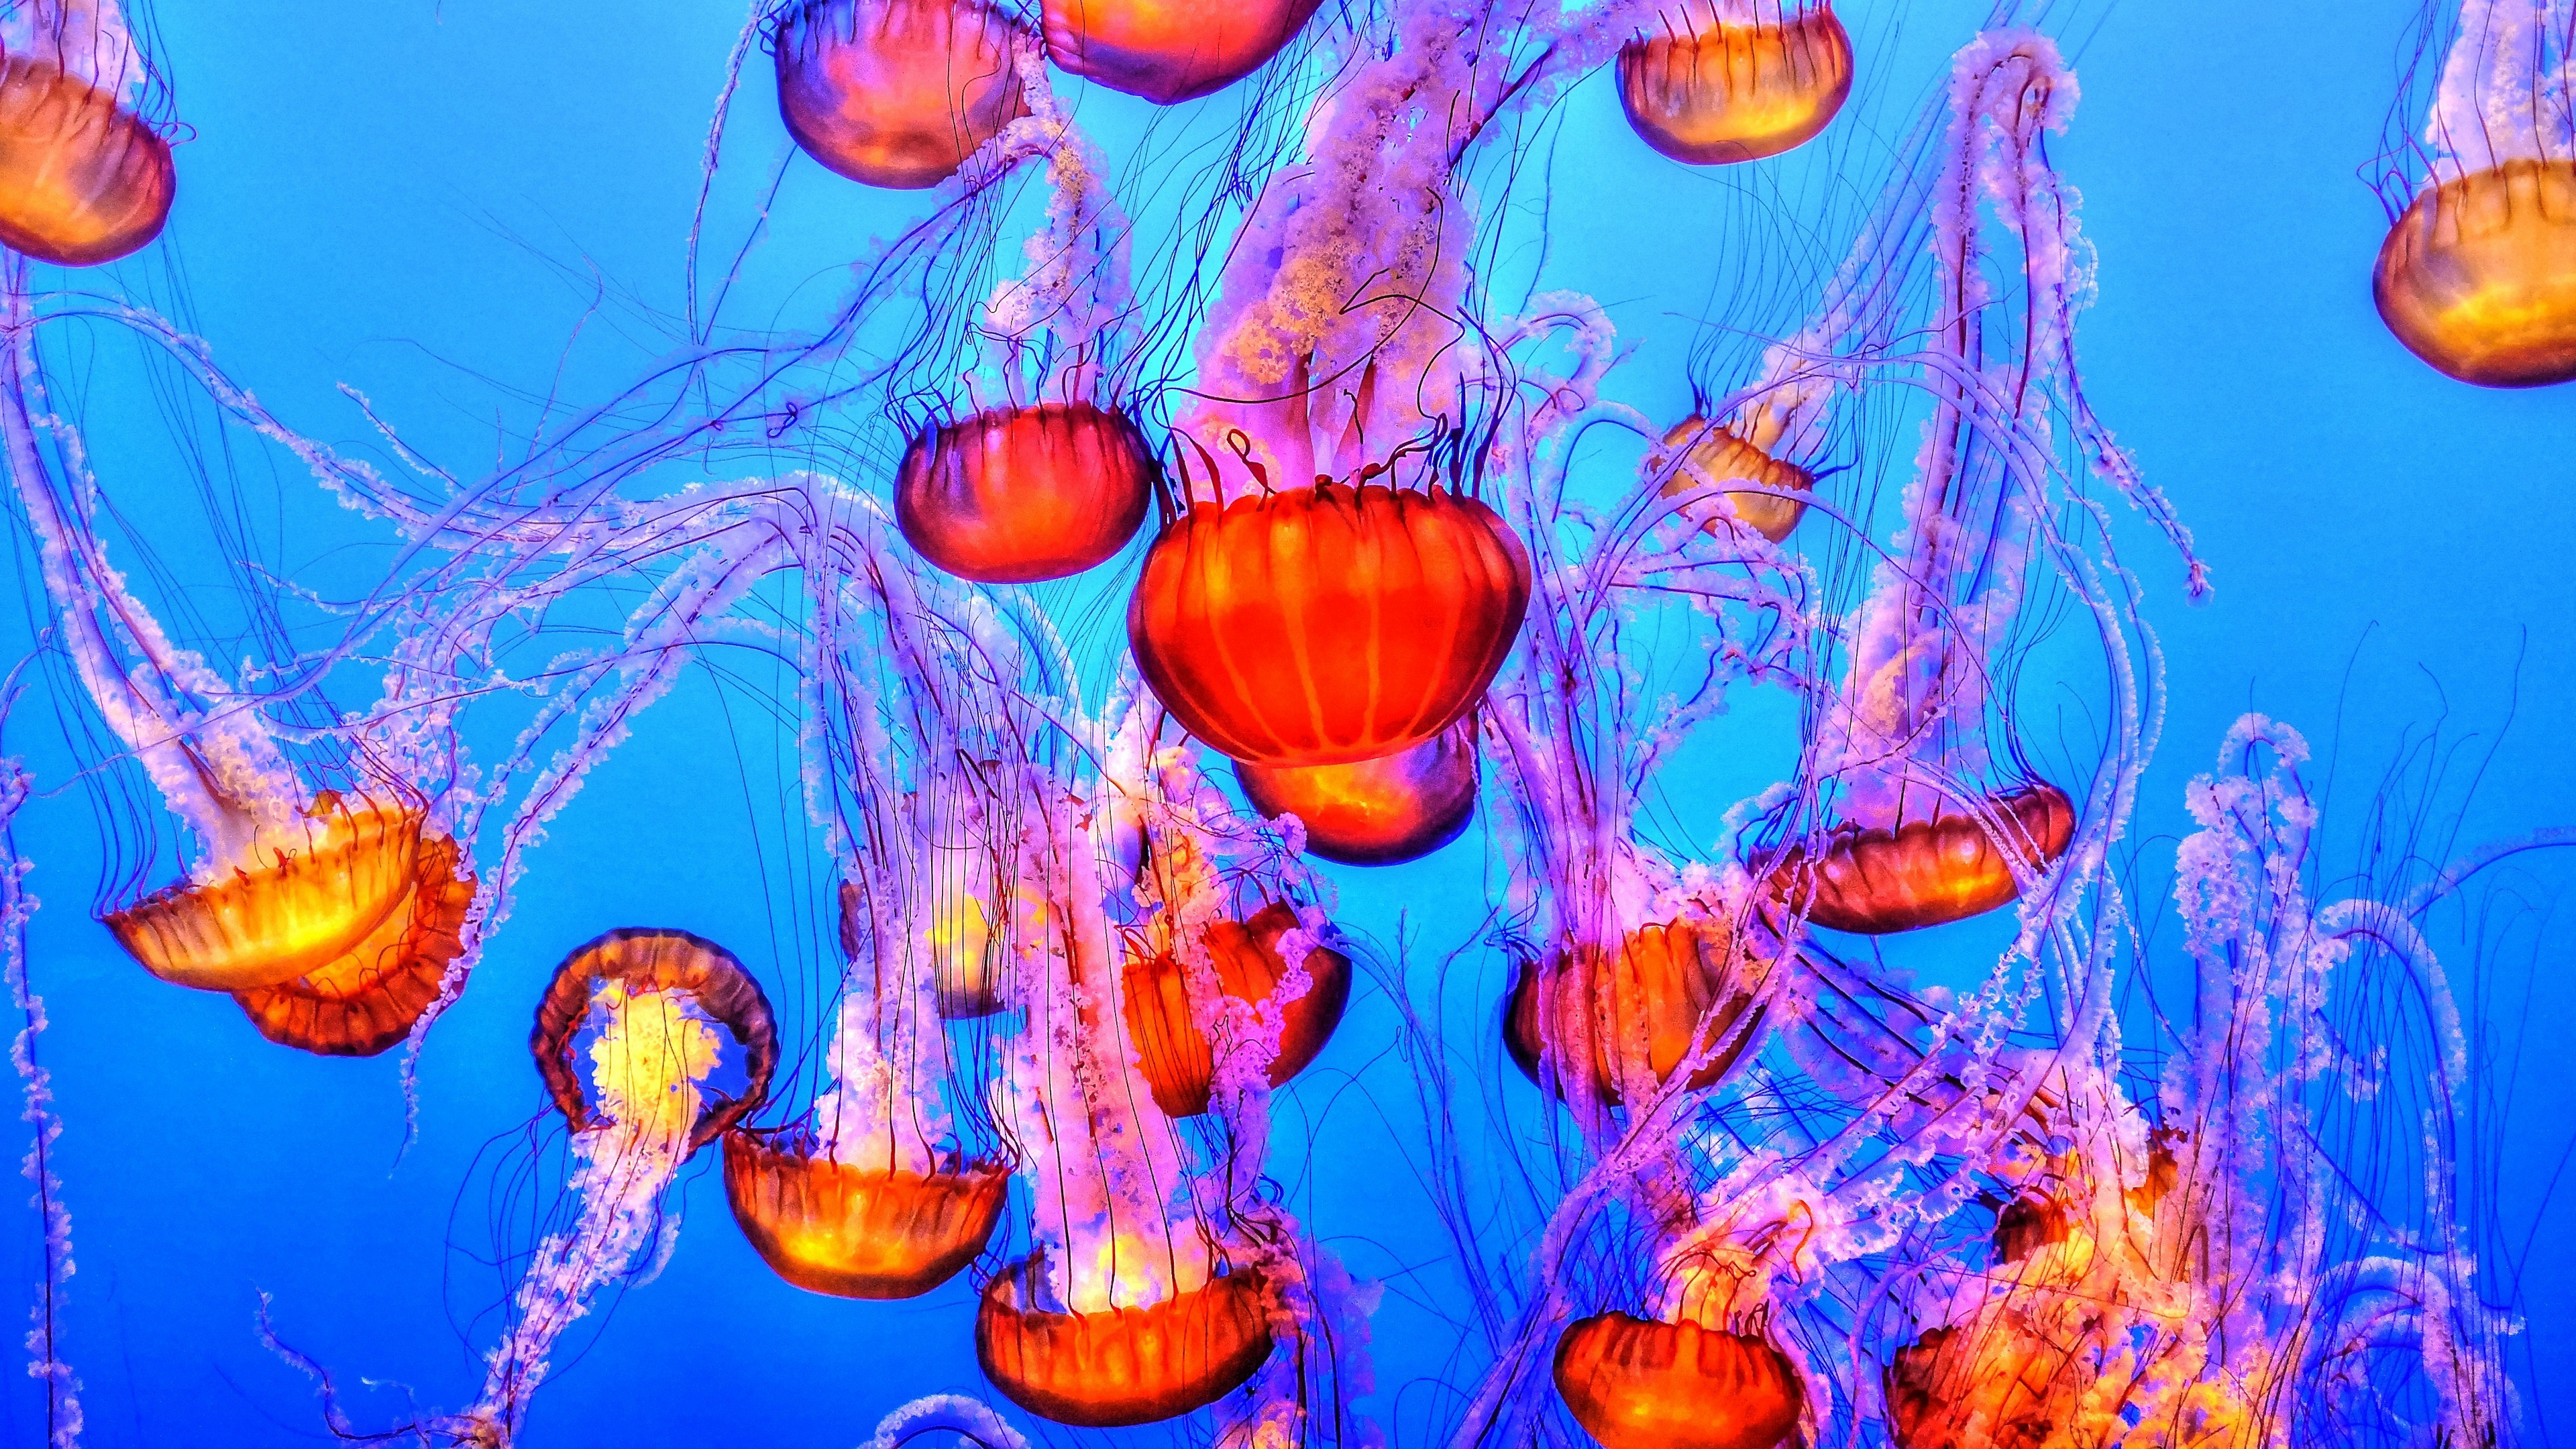 Wallpaper 4k Jellyfish Underwater Swimming 4k Jellyfish Swimming Underwater